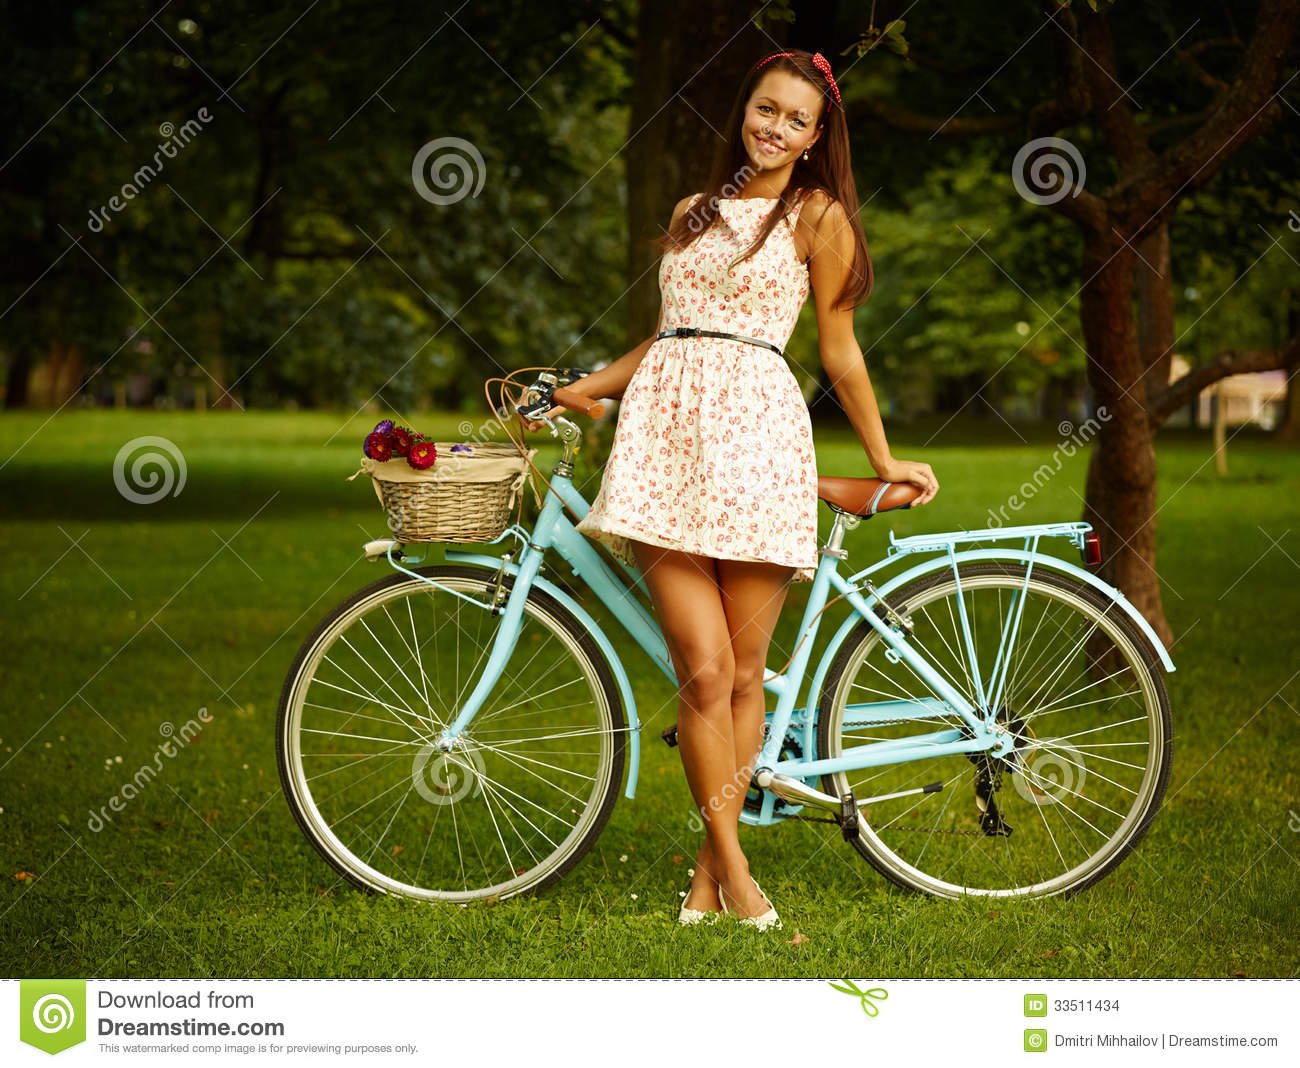 Retro pinup girl with bike